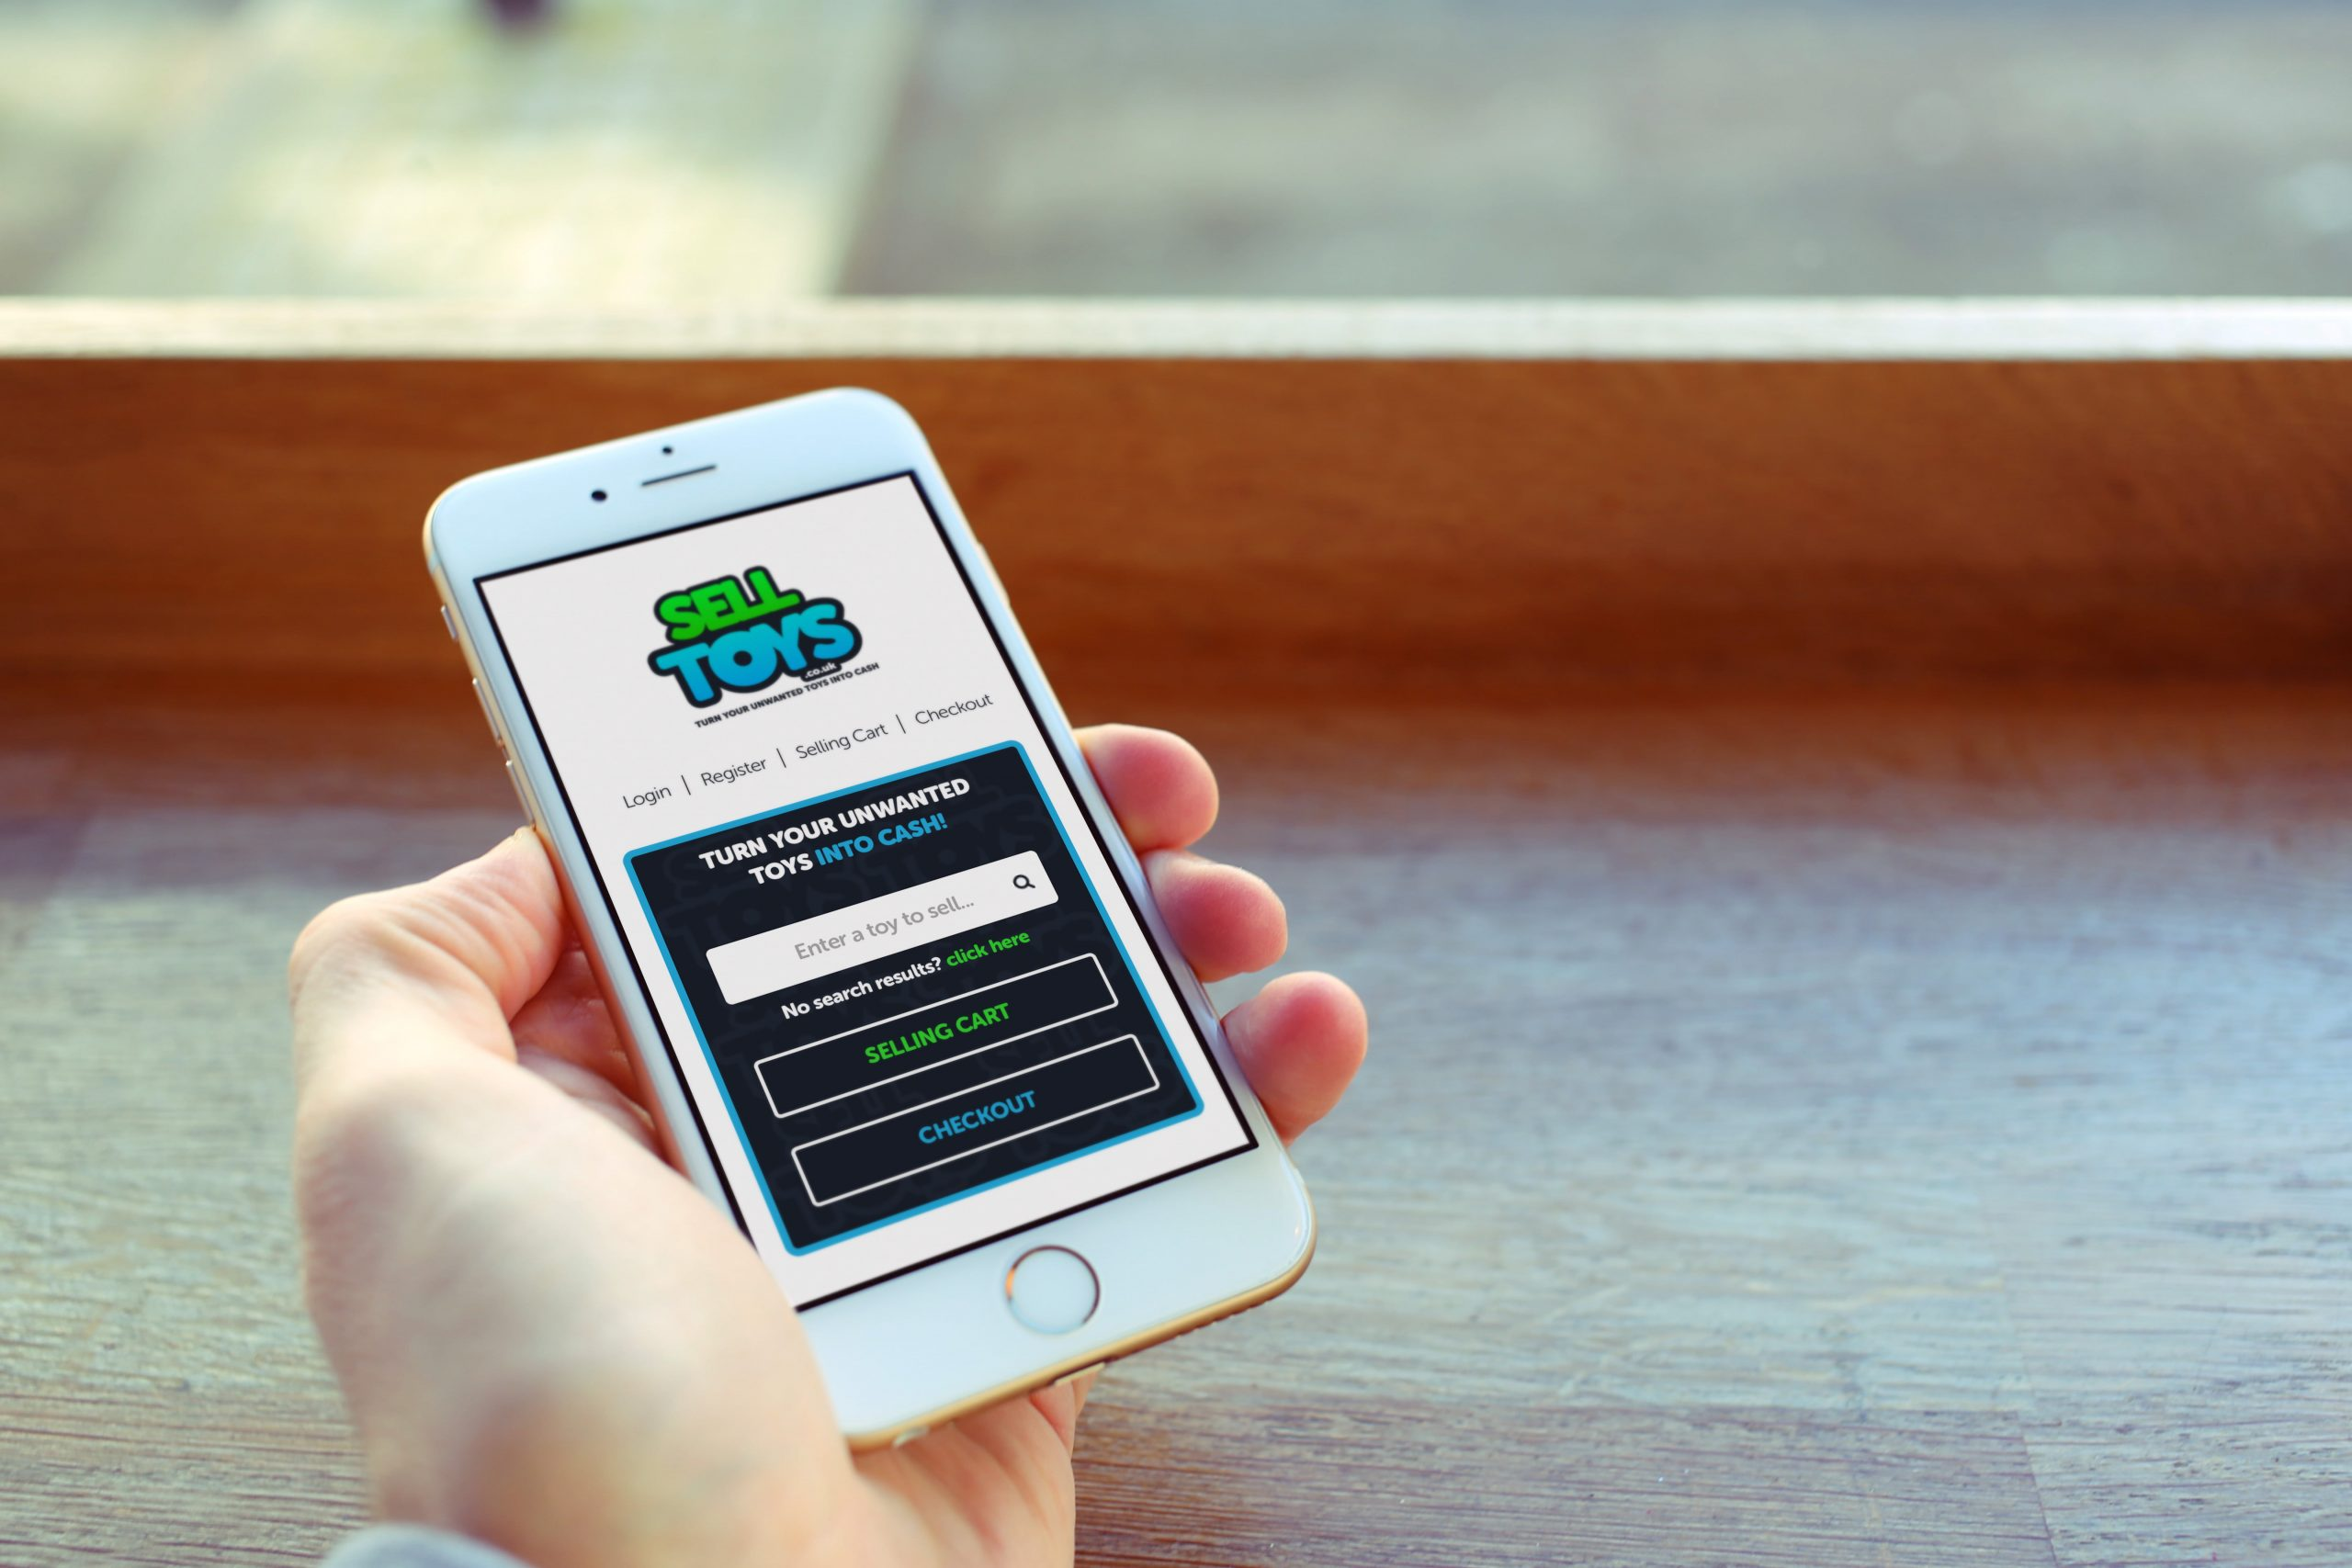 Sell Toys website being viewed by person on mobile